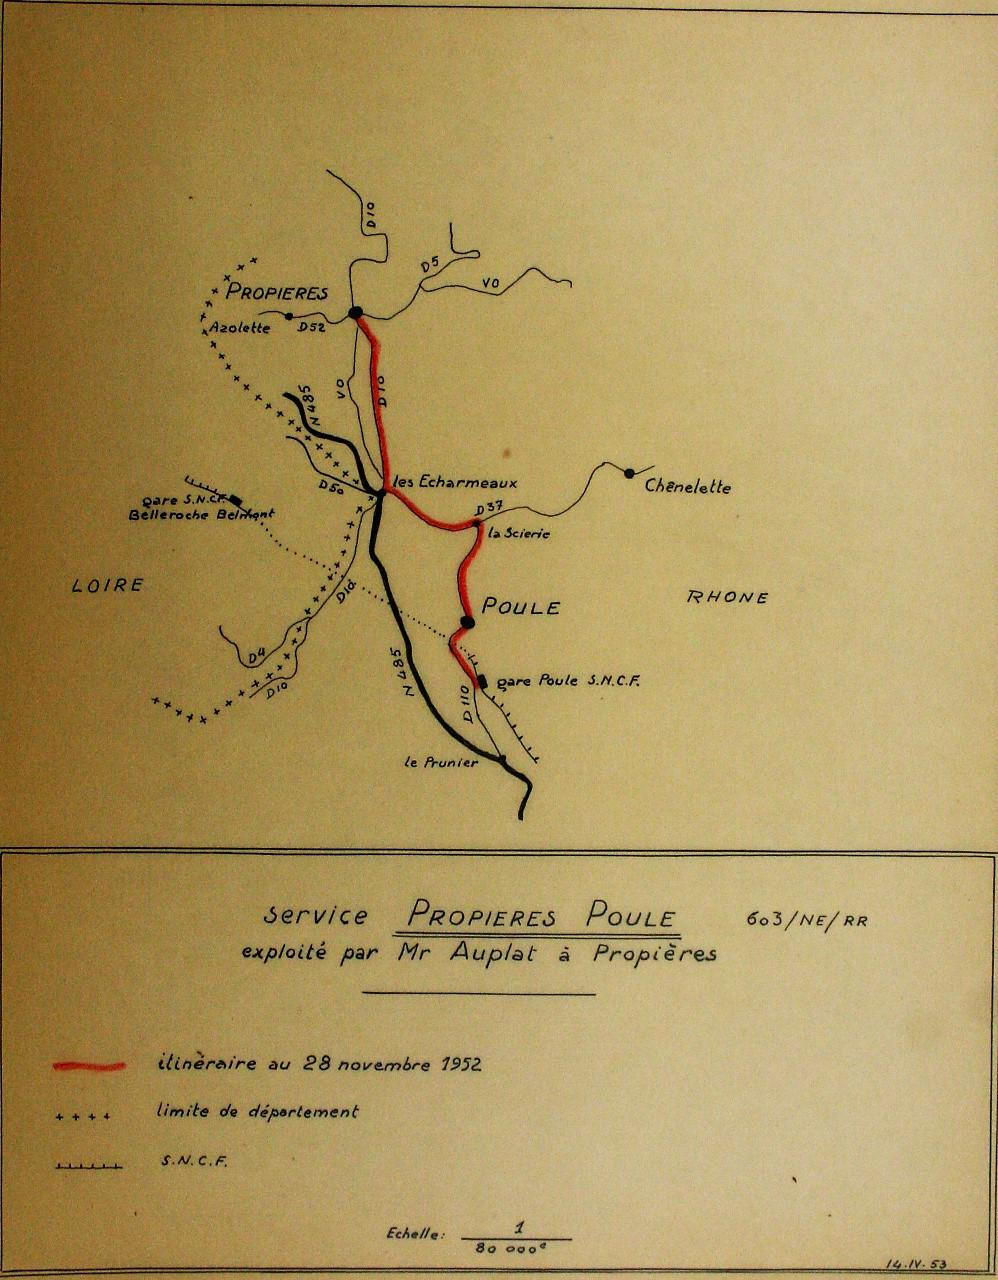 Propieres to Poule route in 1952